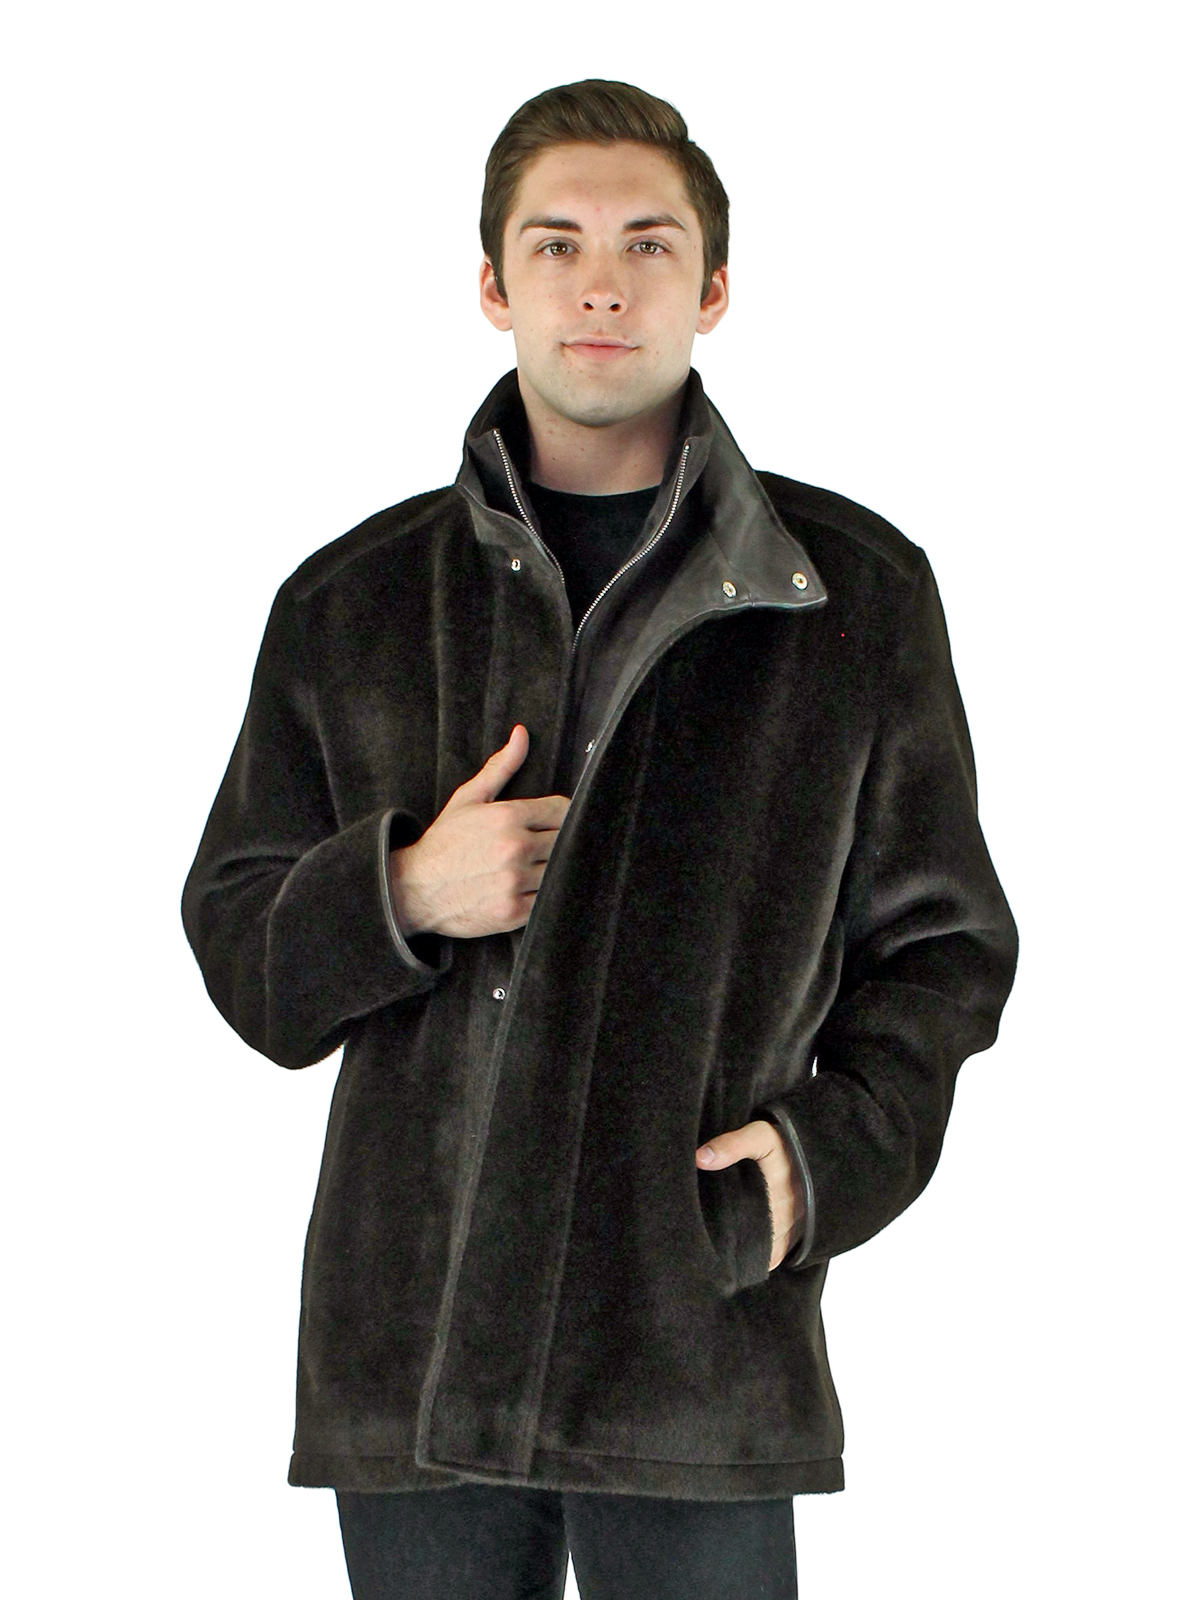 Man's Brown Alpaca Wool Jacket with Leather Trim